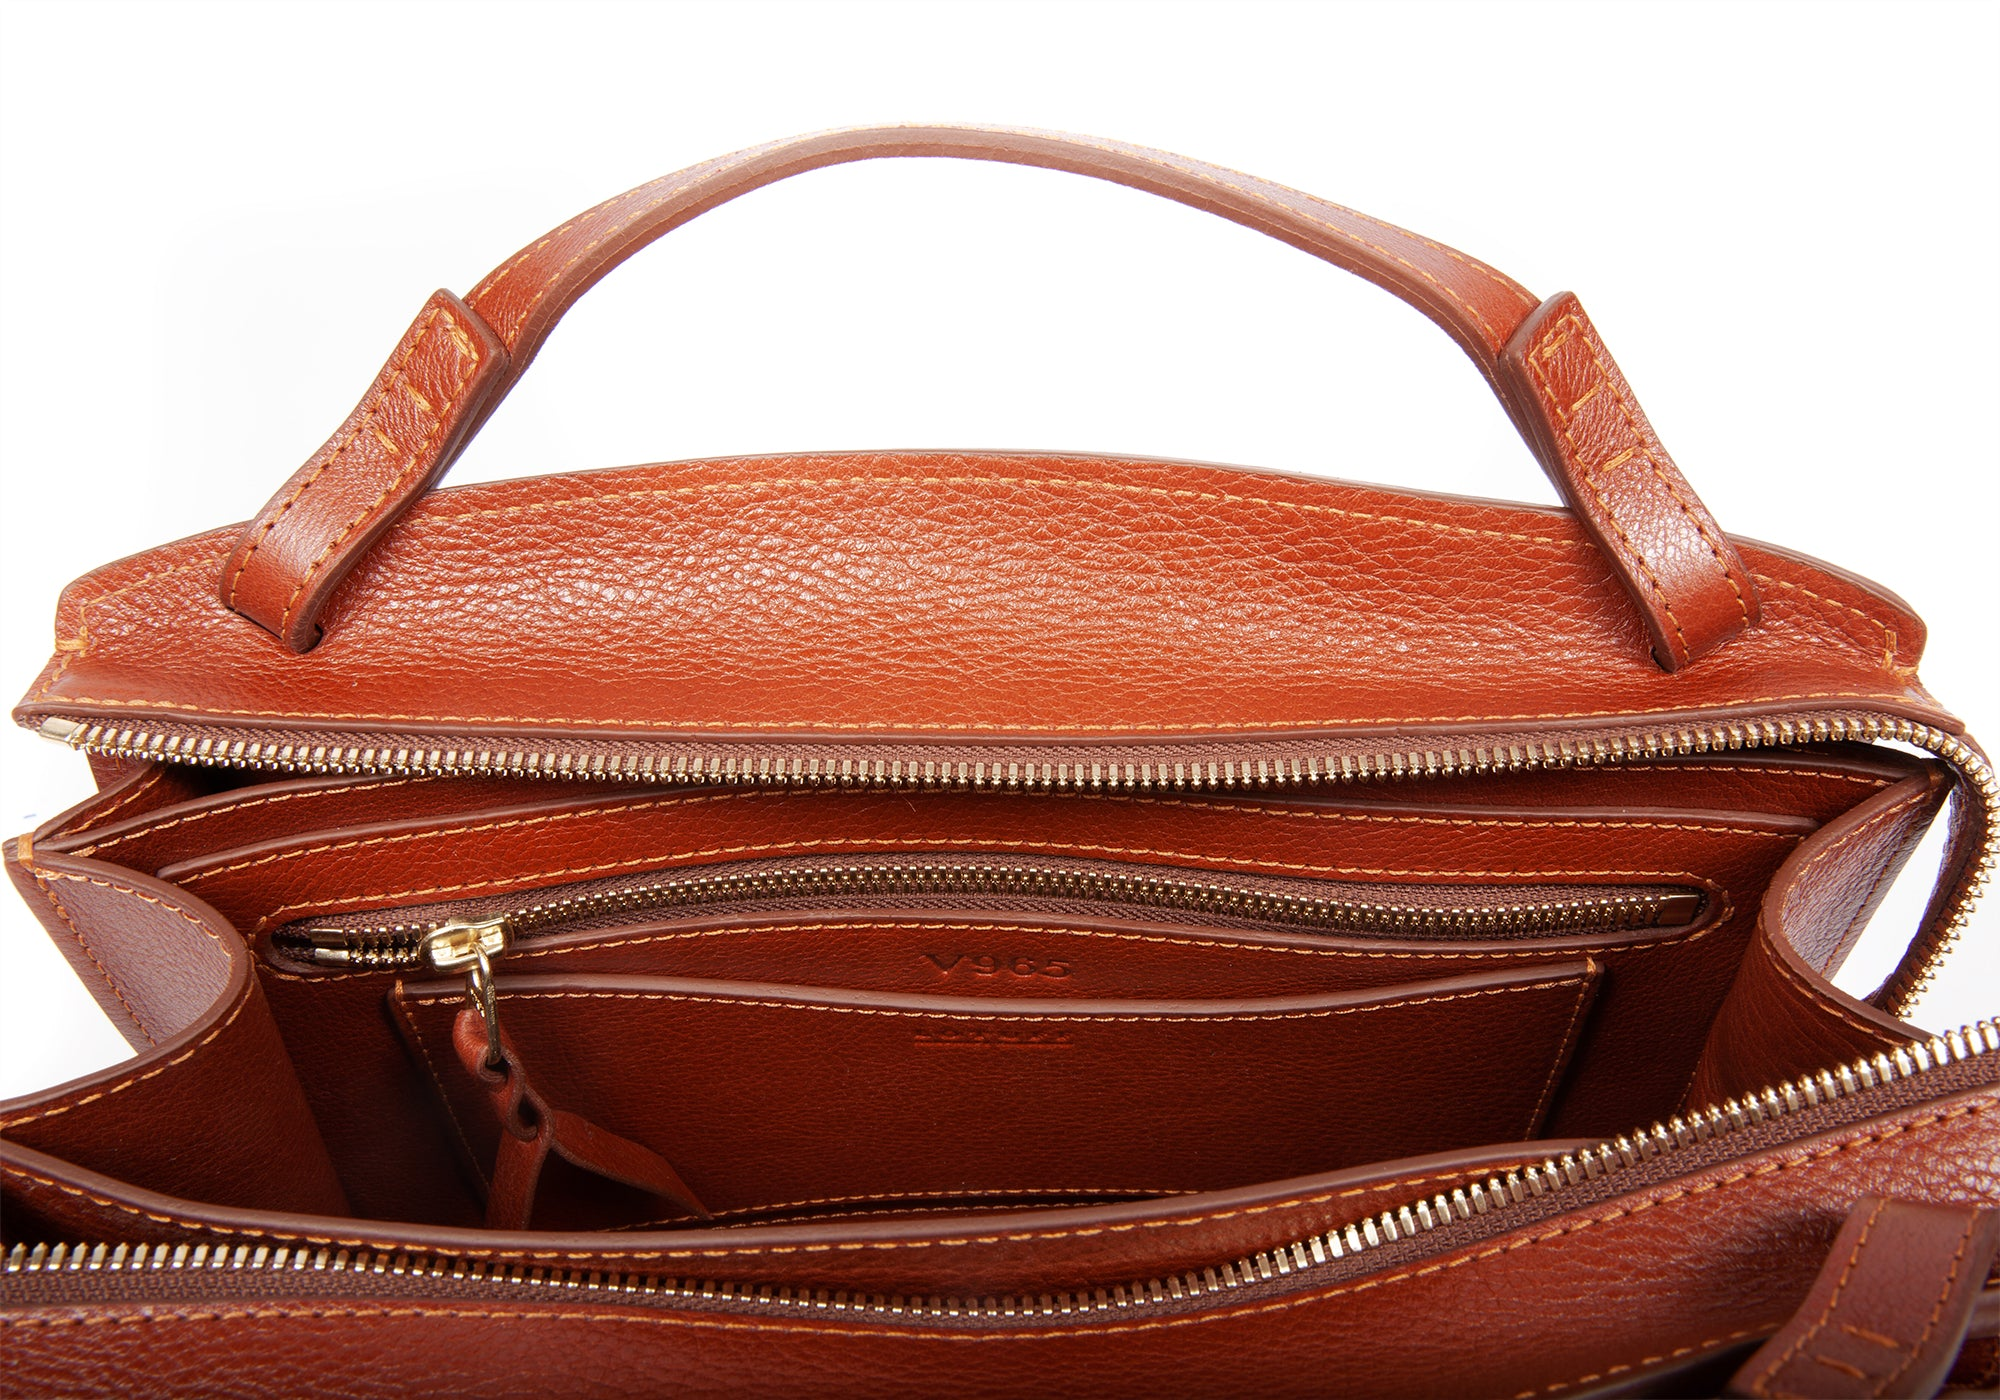 The Sol Handbag Saddle Tan